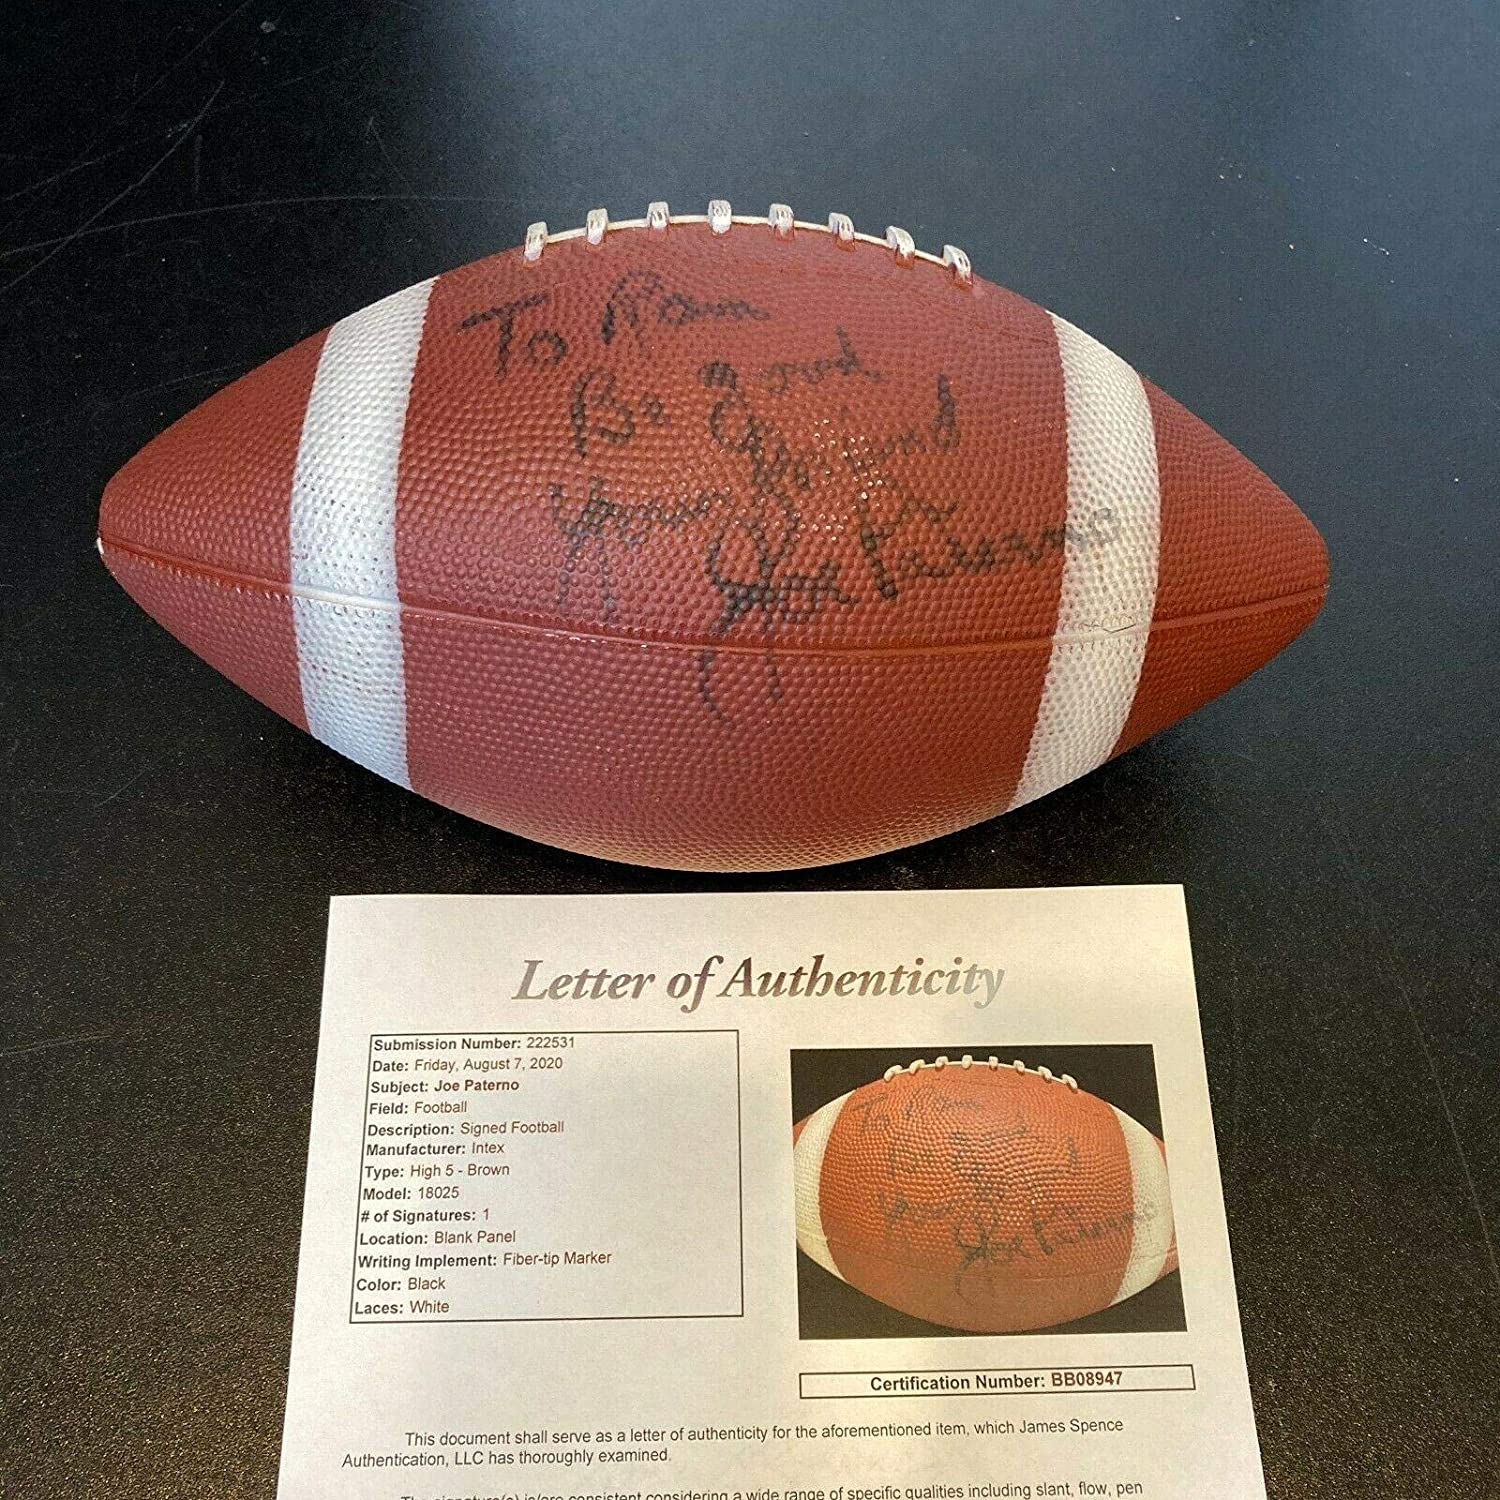 Joe Paterno Signed Autographed Fort Worth Mall Football JSA Popular State NCAA Penn With